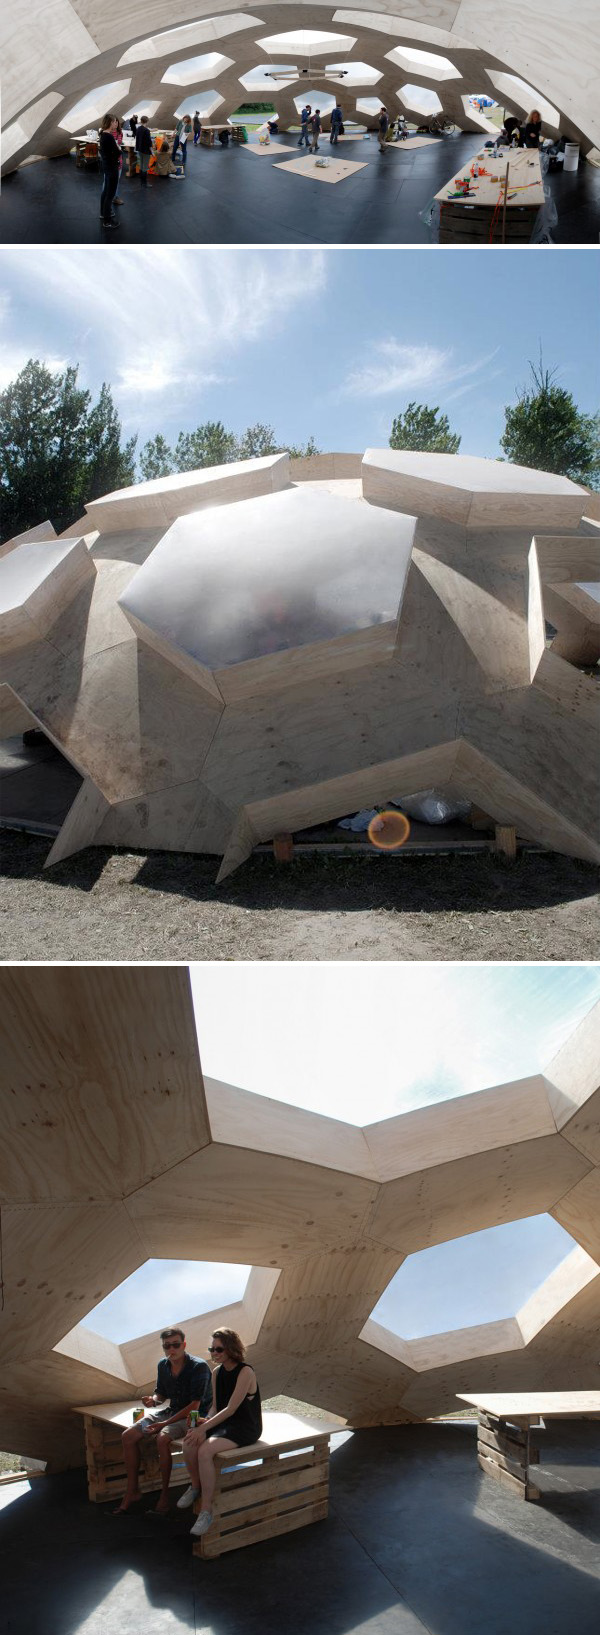 plywood dome, cool architecture, hexagonal structure, Festival structure, Danish design